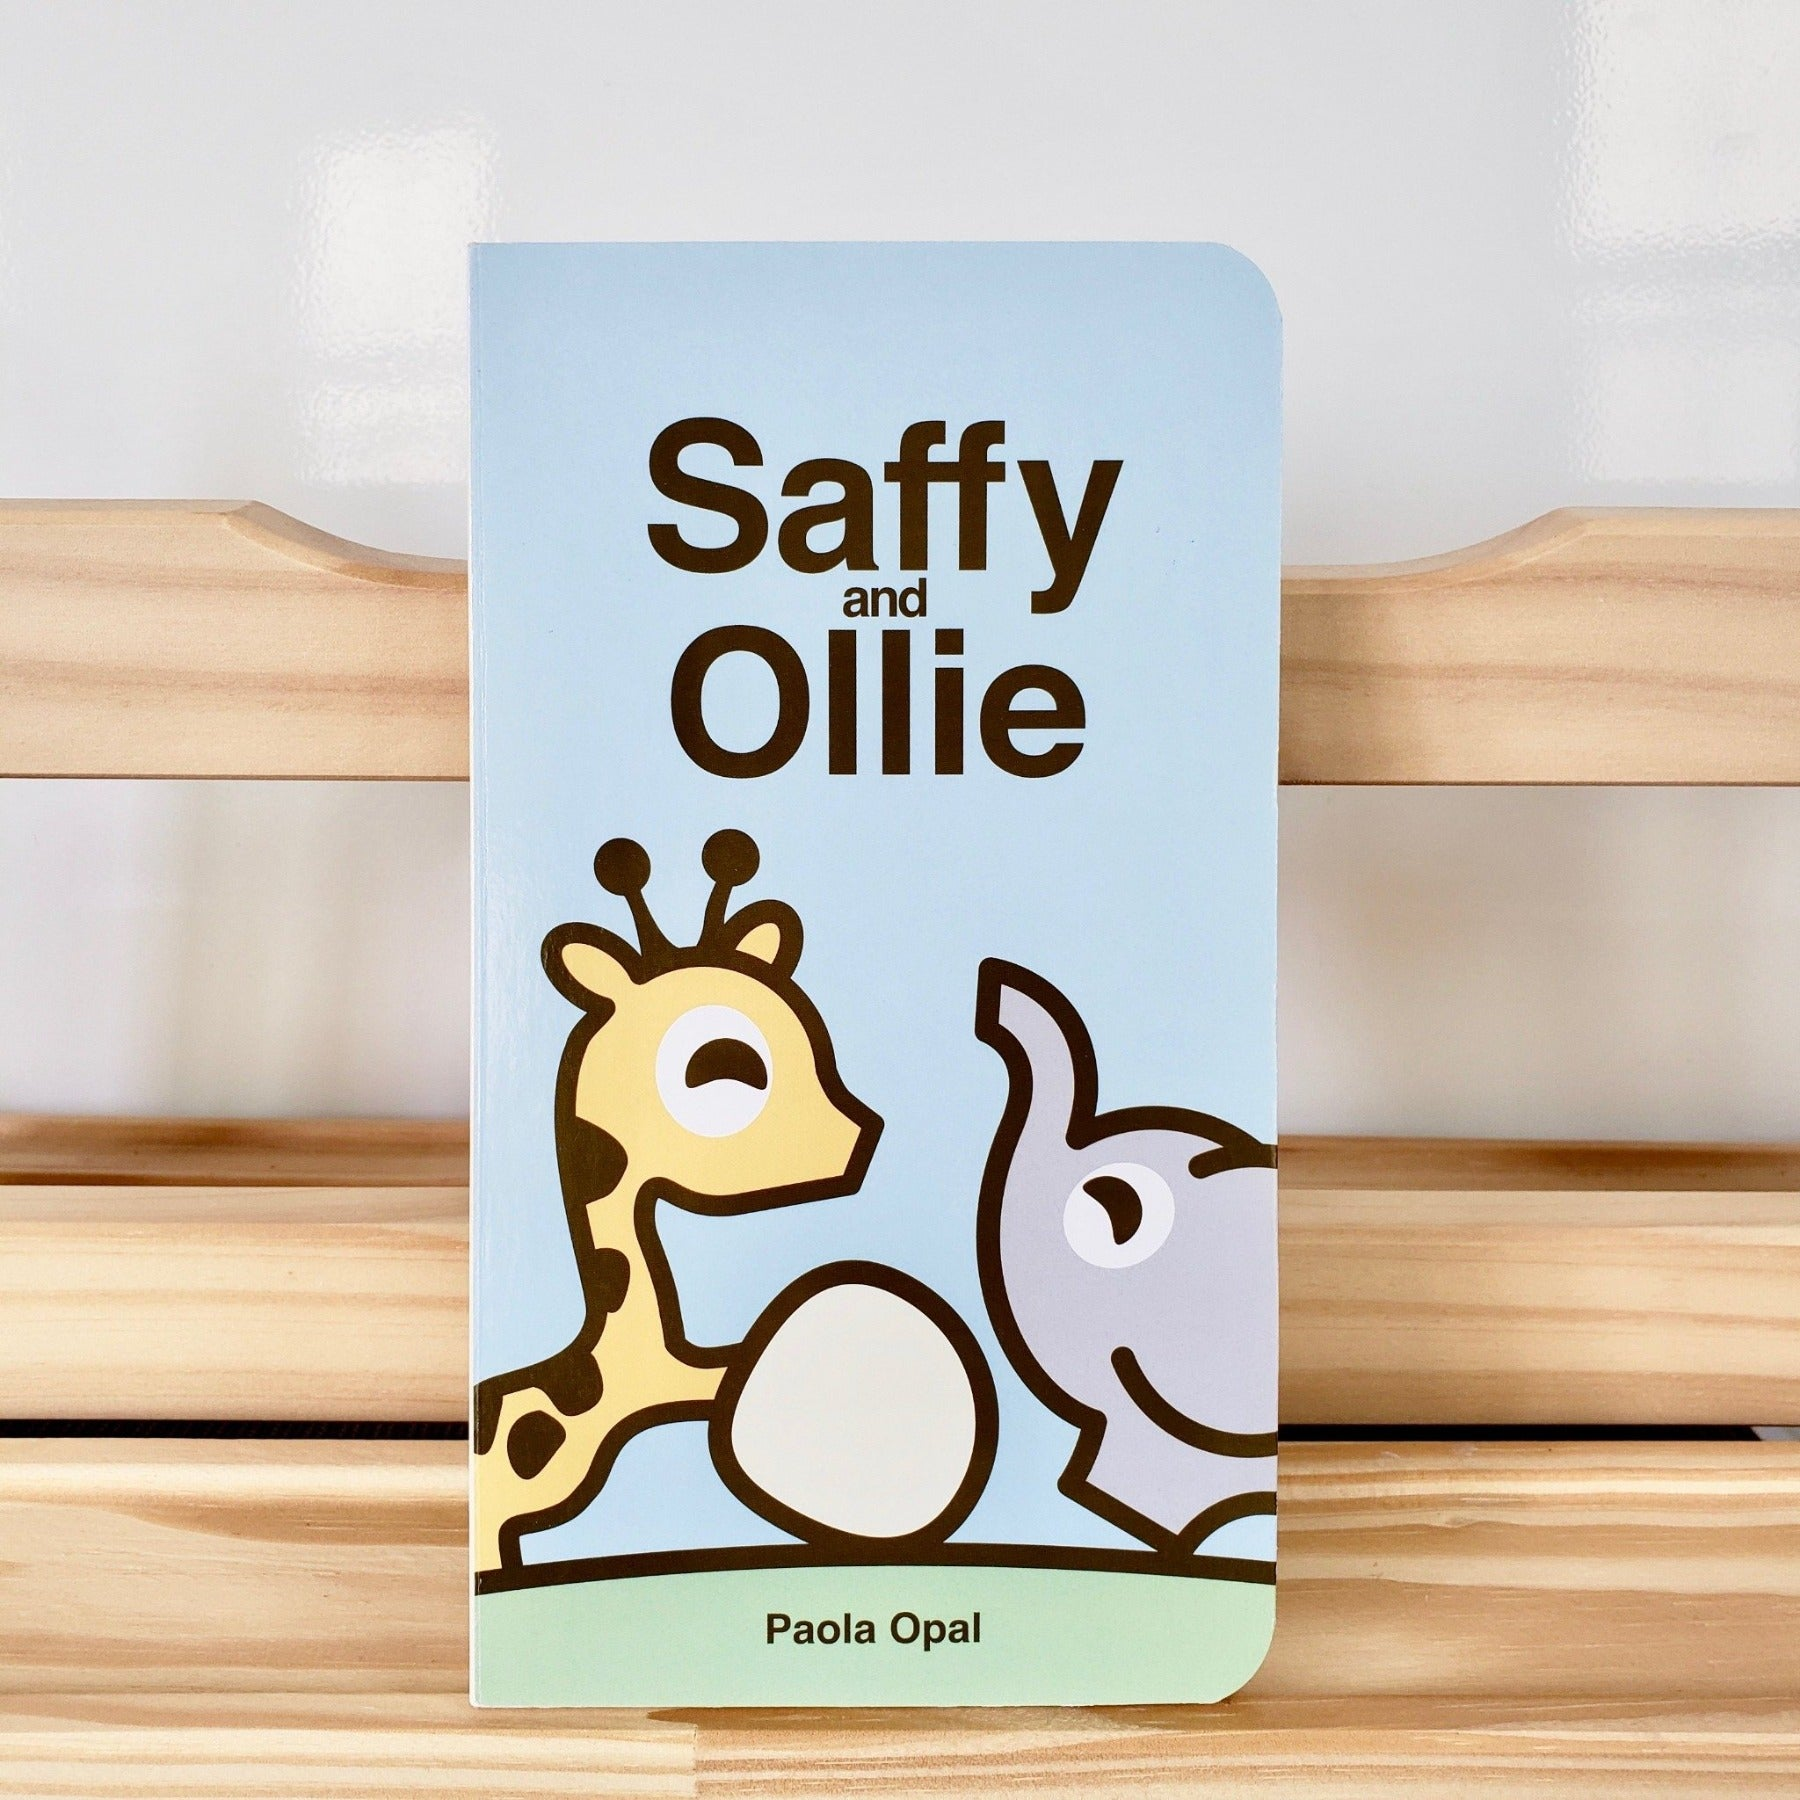 Cute Children Books | Simply Small Series by Paola Opal: Saffy and Ollie front cover